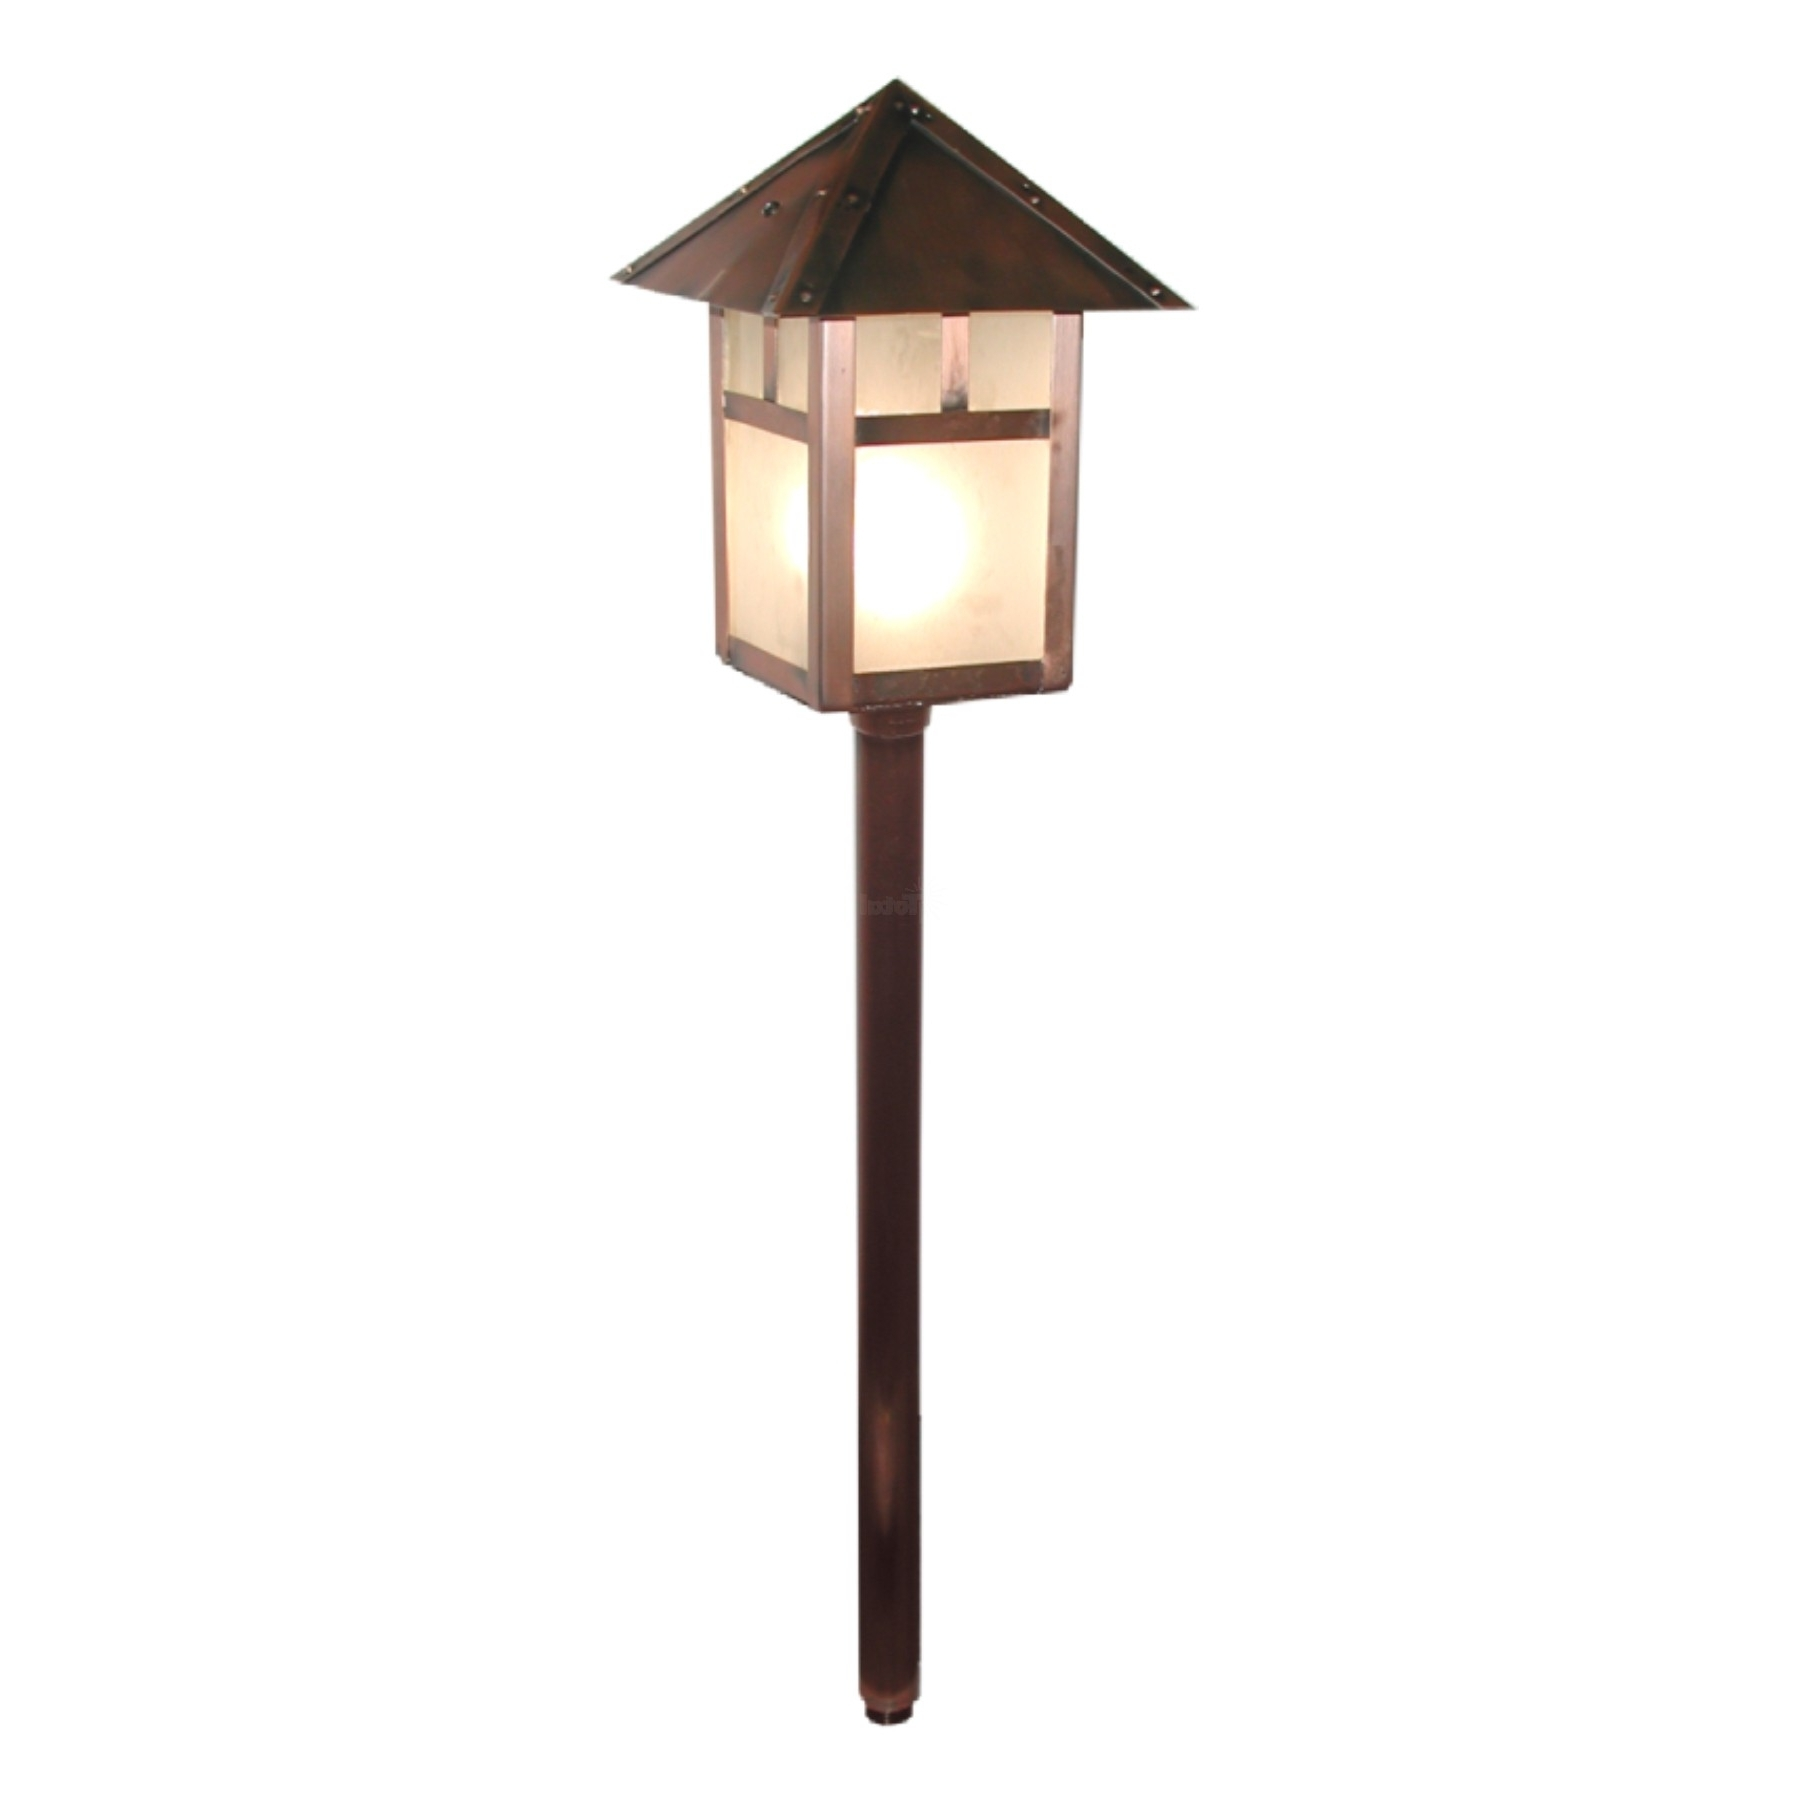 Outdoor Low Voltage Lanterns Intended For Well Known Landscape Lighting Low Voltage Lantern Path Light, Low Voltage (View 15 of 20)